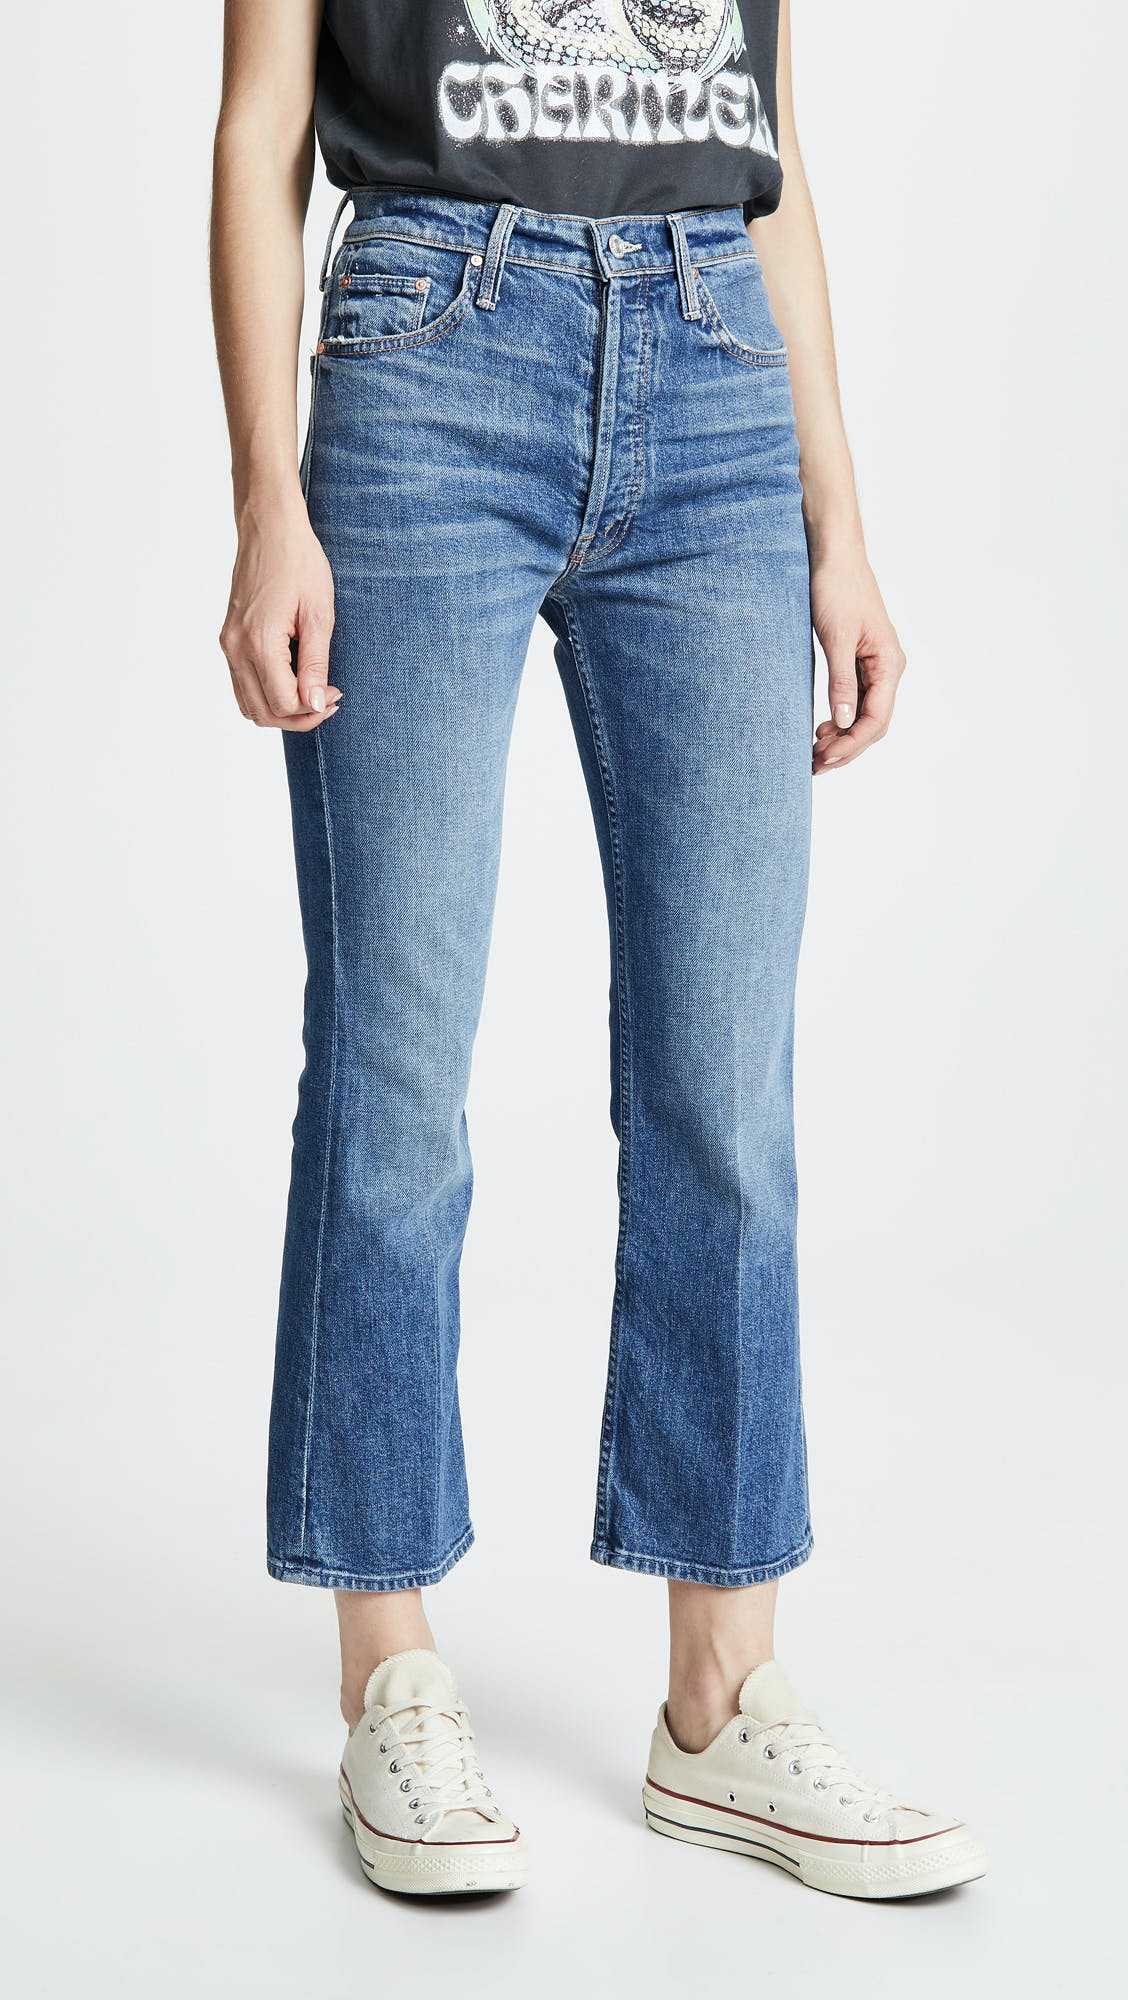 mother jeans, the tripper, cropped jeans, cropped flare, kick flare, high rise jeans, button-fly, high waisted jeans